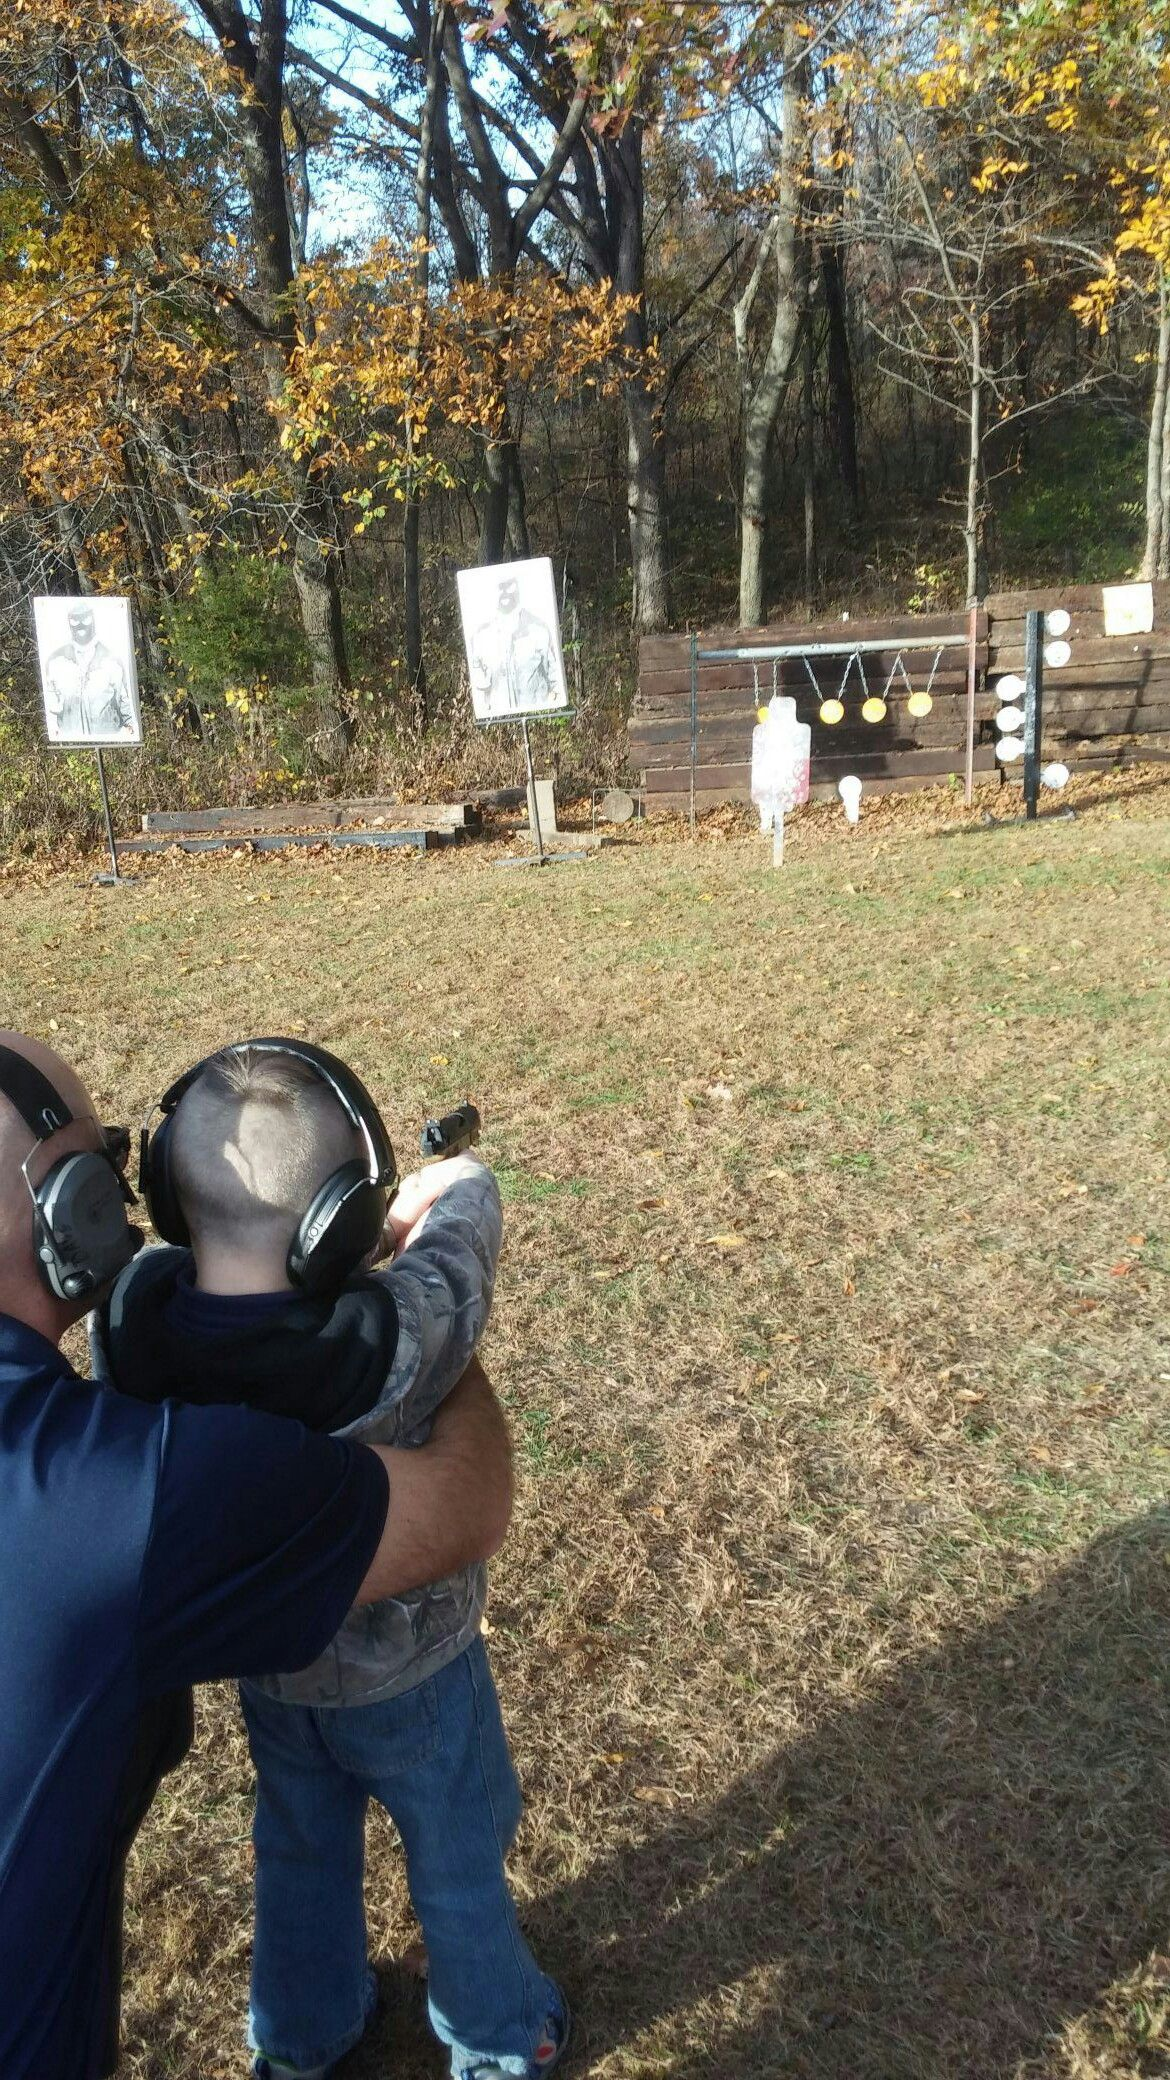 Safe fun at the range with my kids! Firearms training